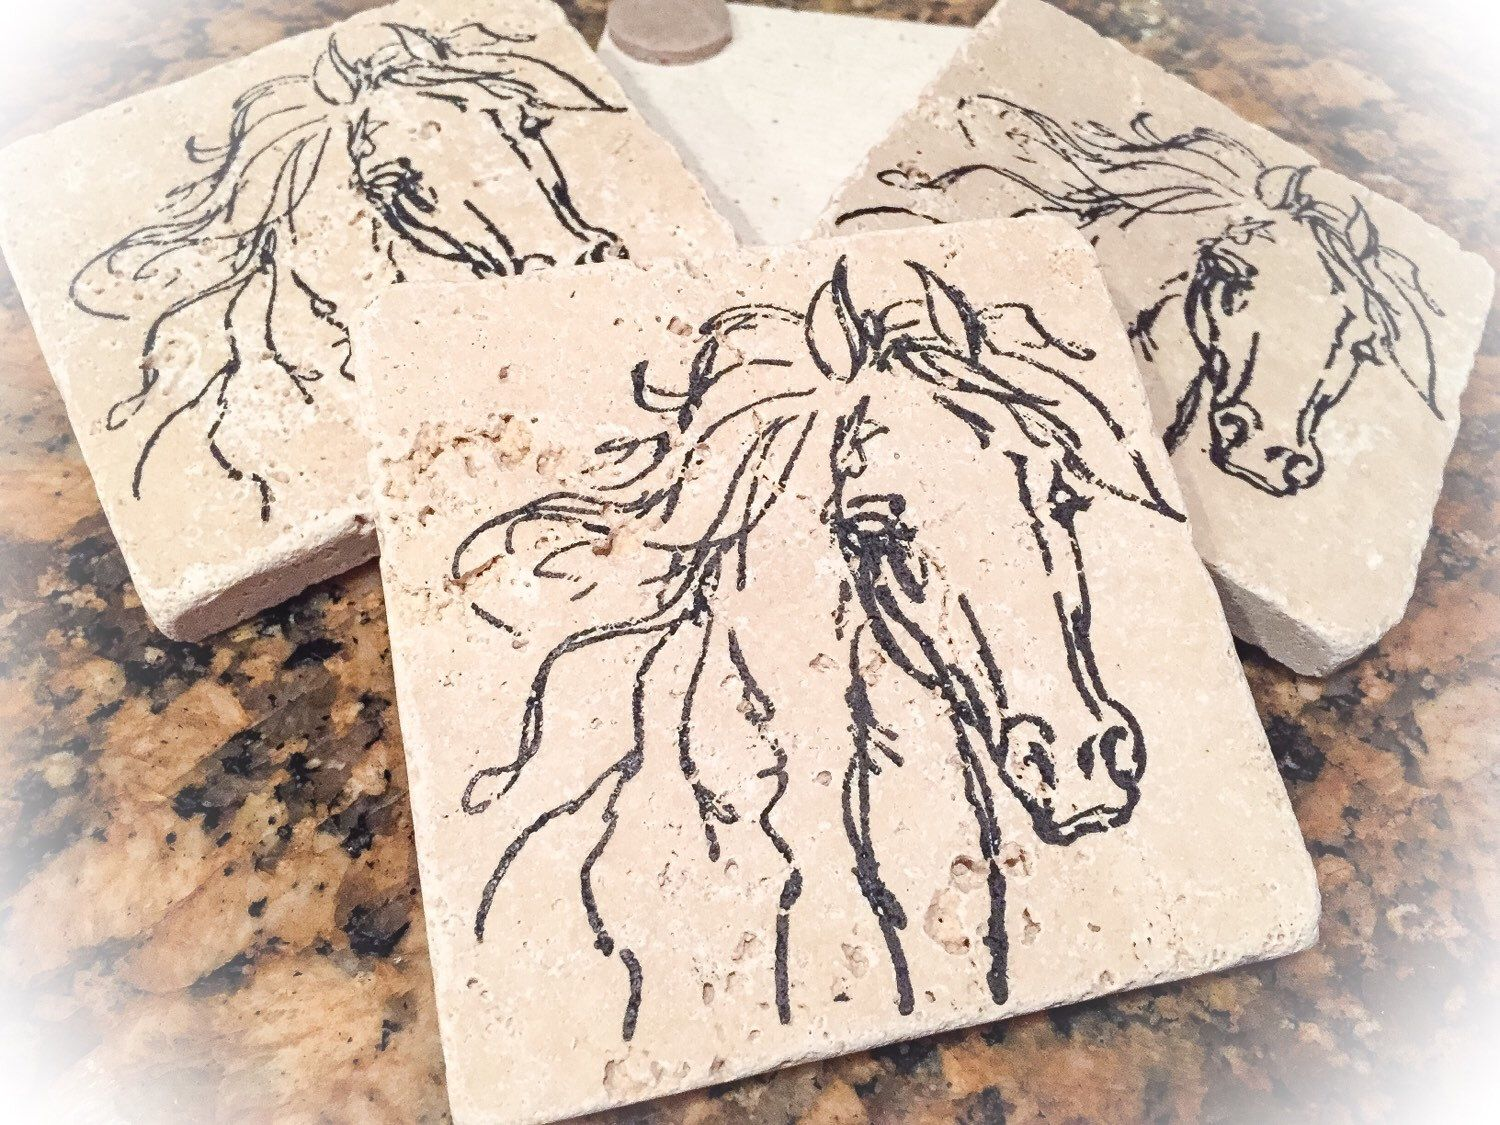 Horse coasters, travertine coaster set, coasters, horse coaster set, travertine horse coasters by LittleThingsByLaurie on Etsy https://www.etsy.com/listing/277681852/horse-coasters-travertine-coaster-set